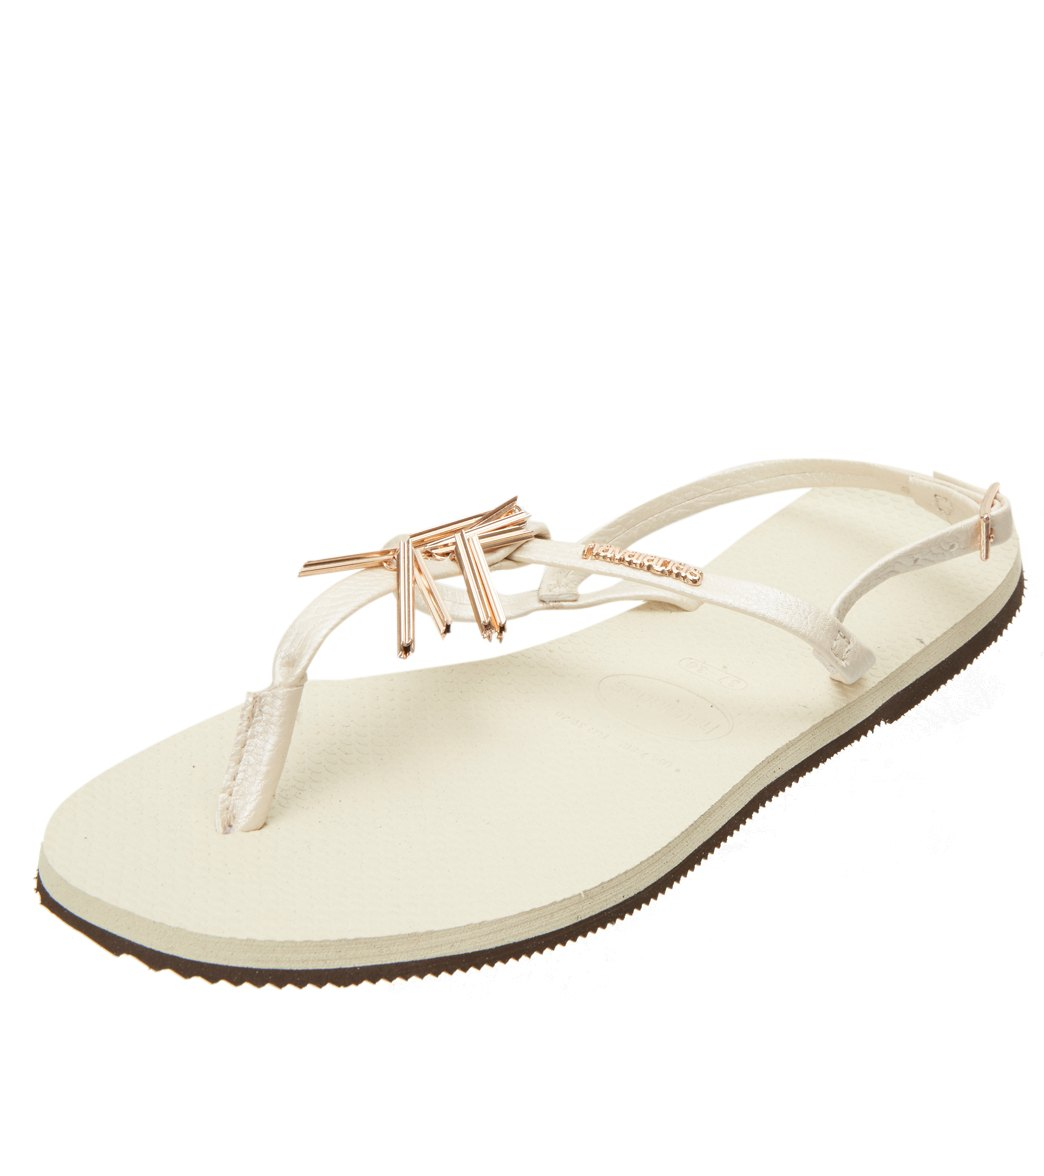 a12ffa0437949d Havaianas Women s You Riviera Maxi Sandal at SwimOutlet.com